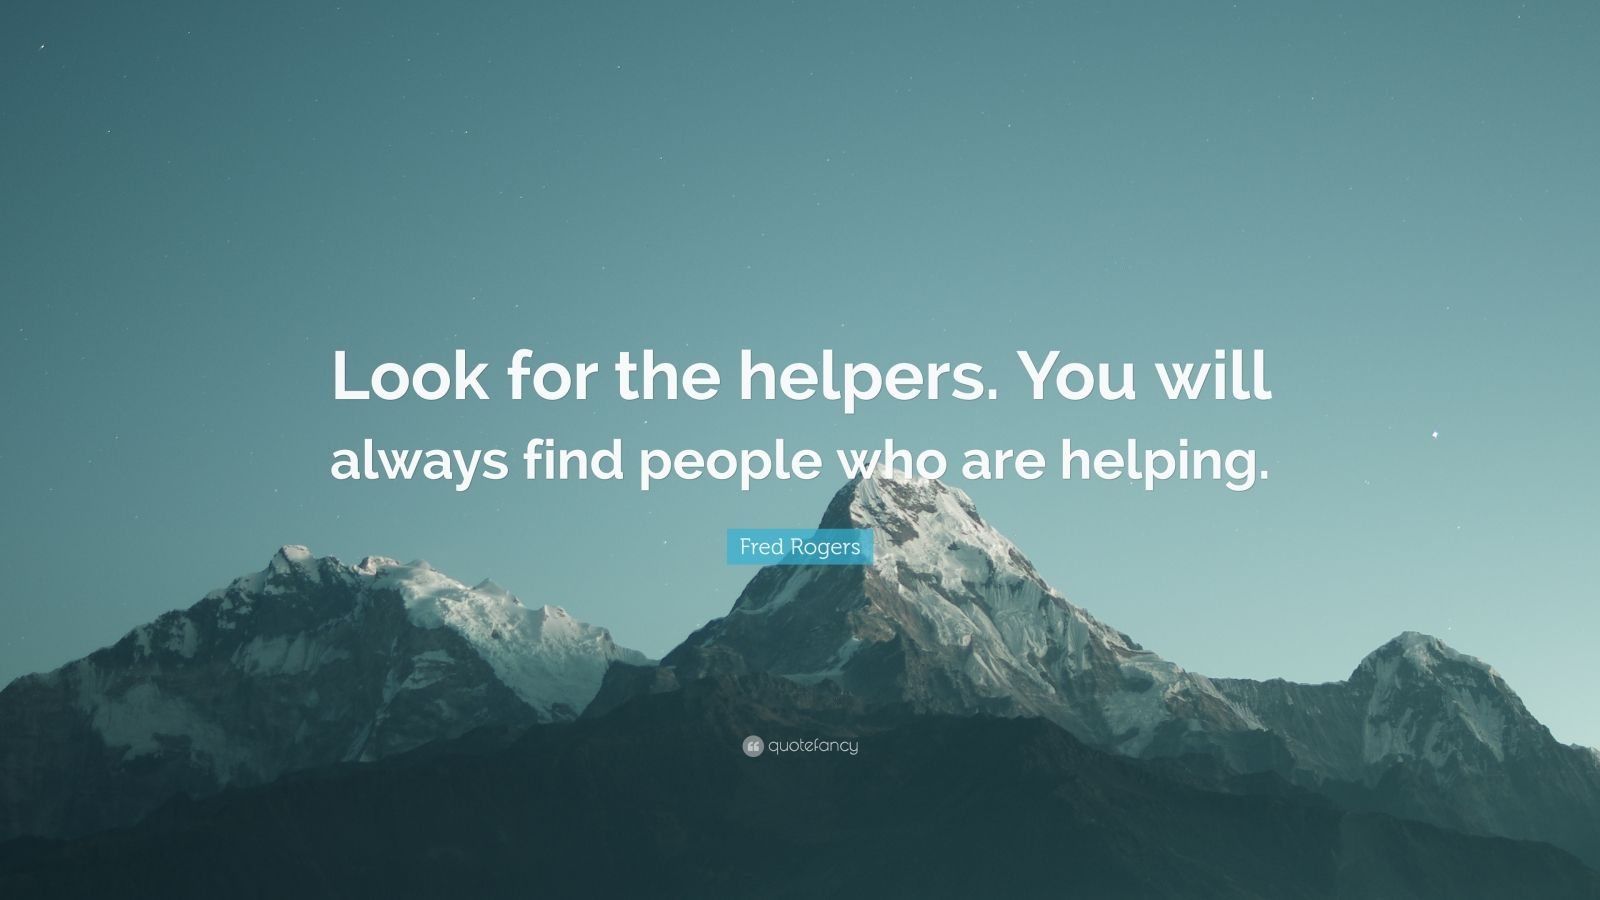 Fred Rogers Quote Look For The Helpers You Will Always Find People Who Are Helping 12 Wallpapers Quotefancy